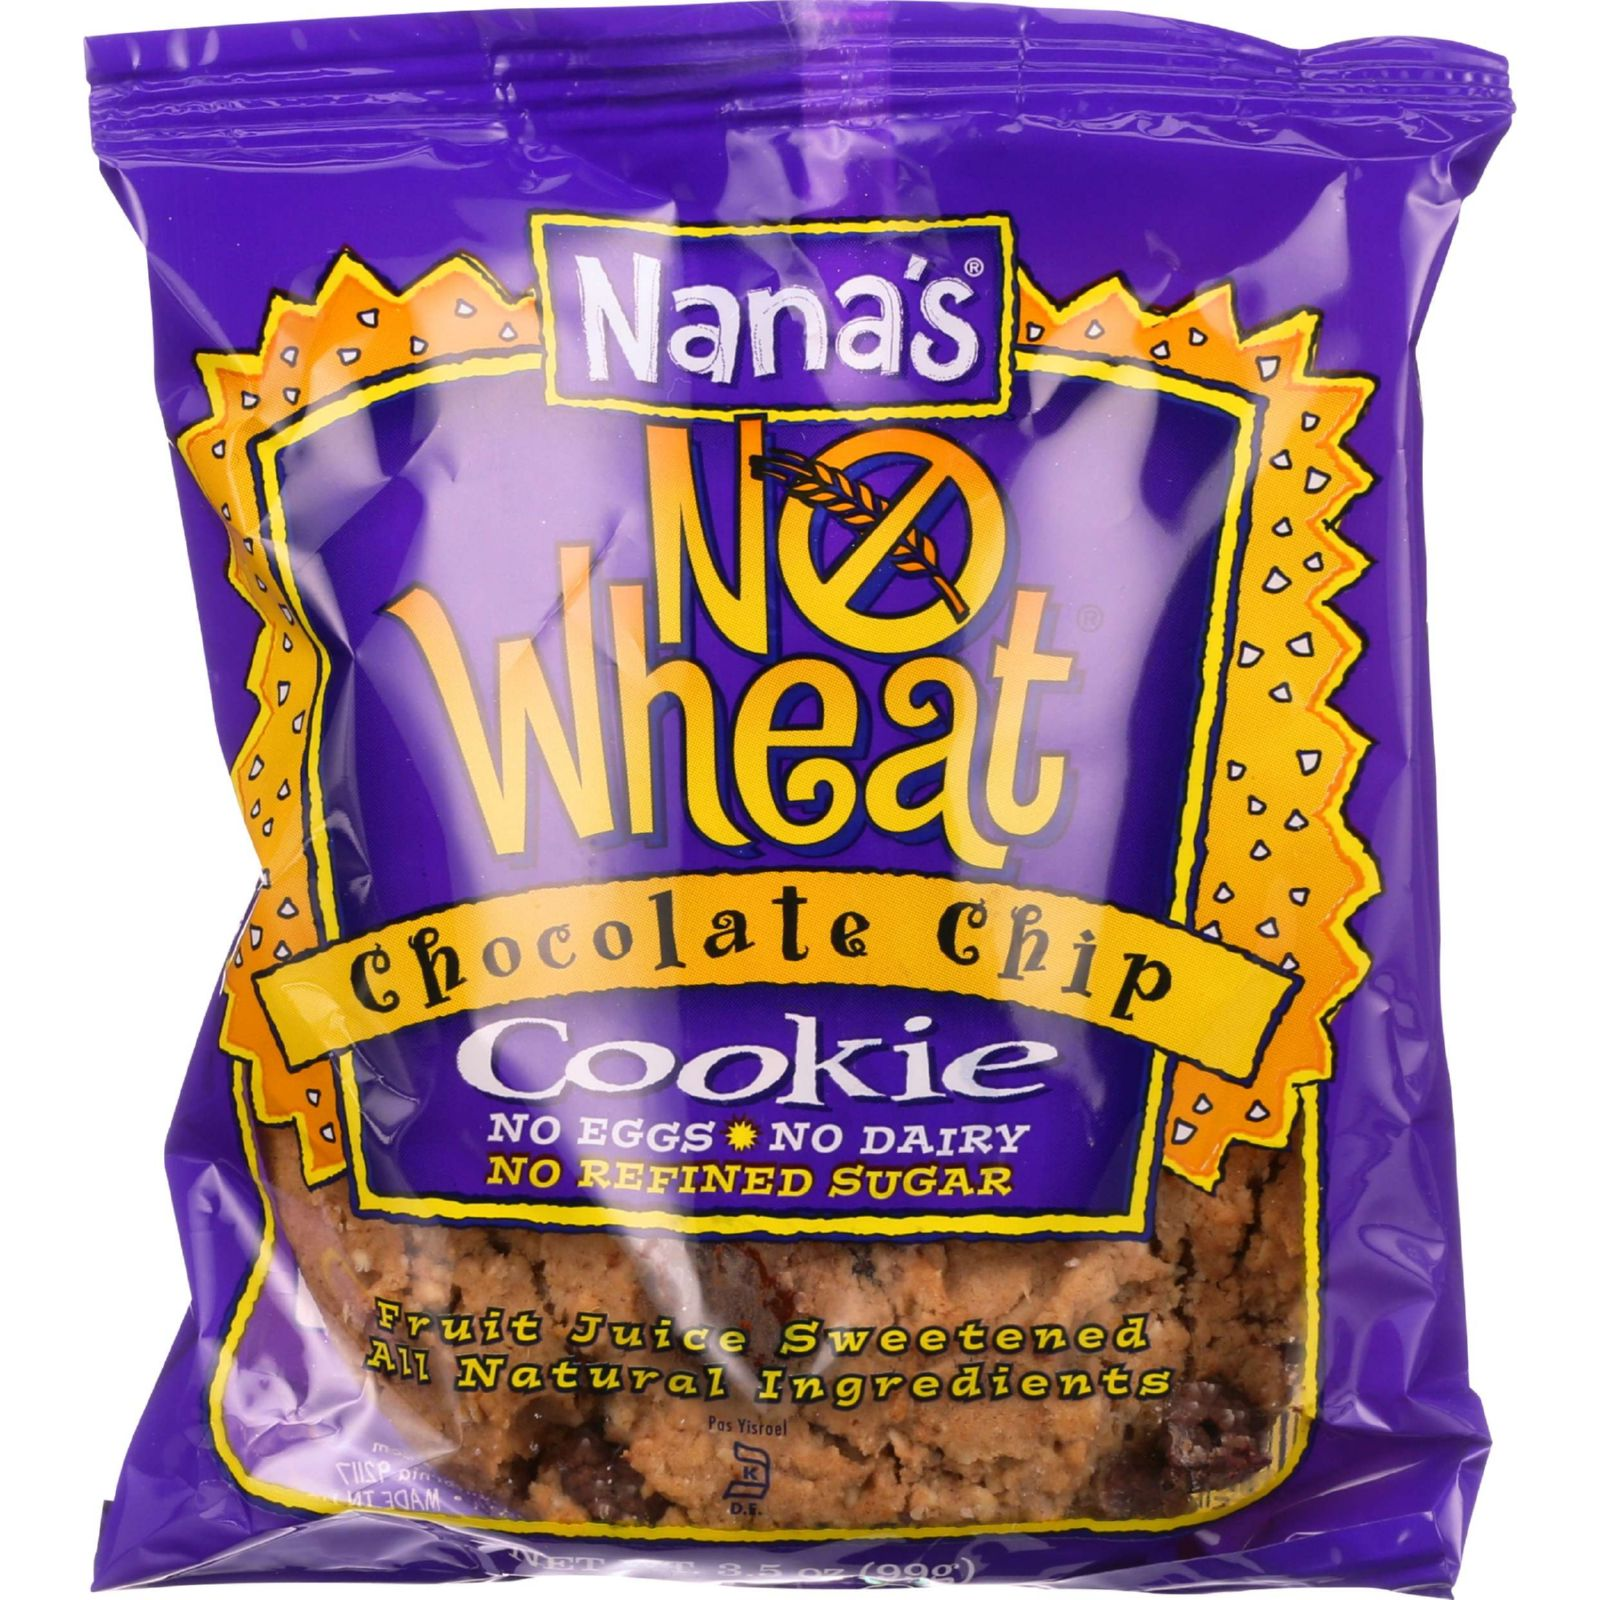 Nanas Cookie Cookie - Chocolate Chip - No Wheat - 3.5 Oz - Case Of 12